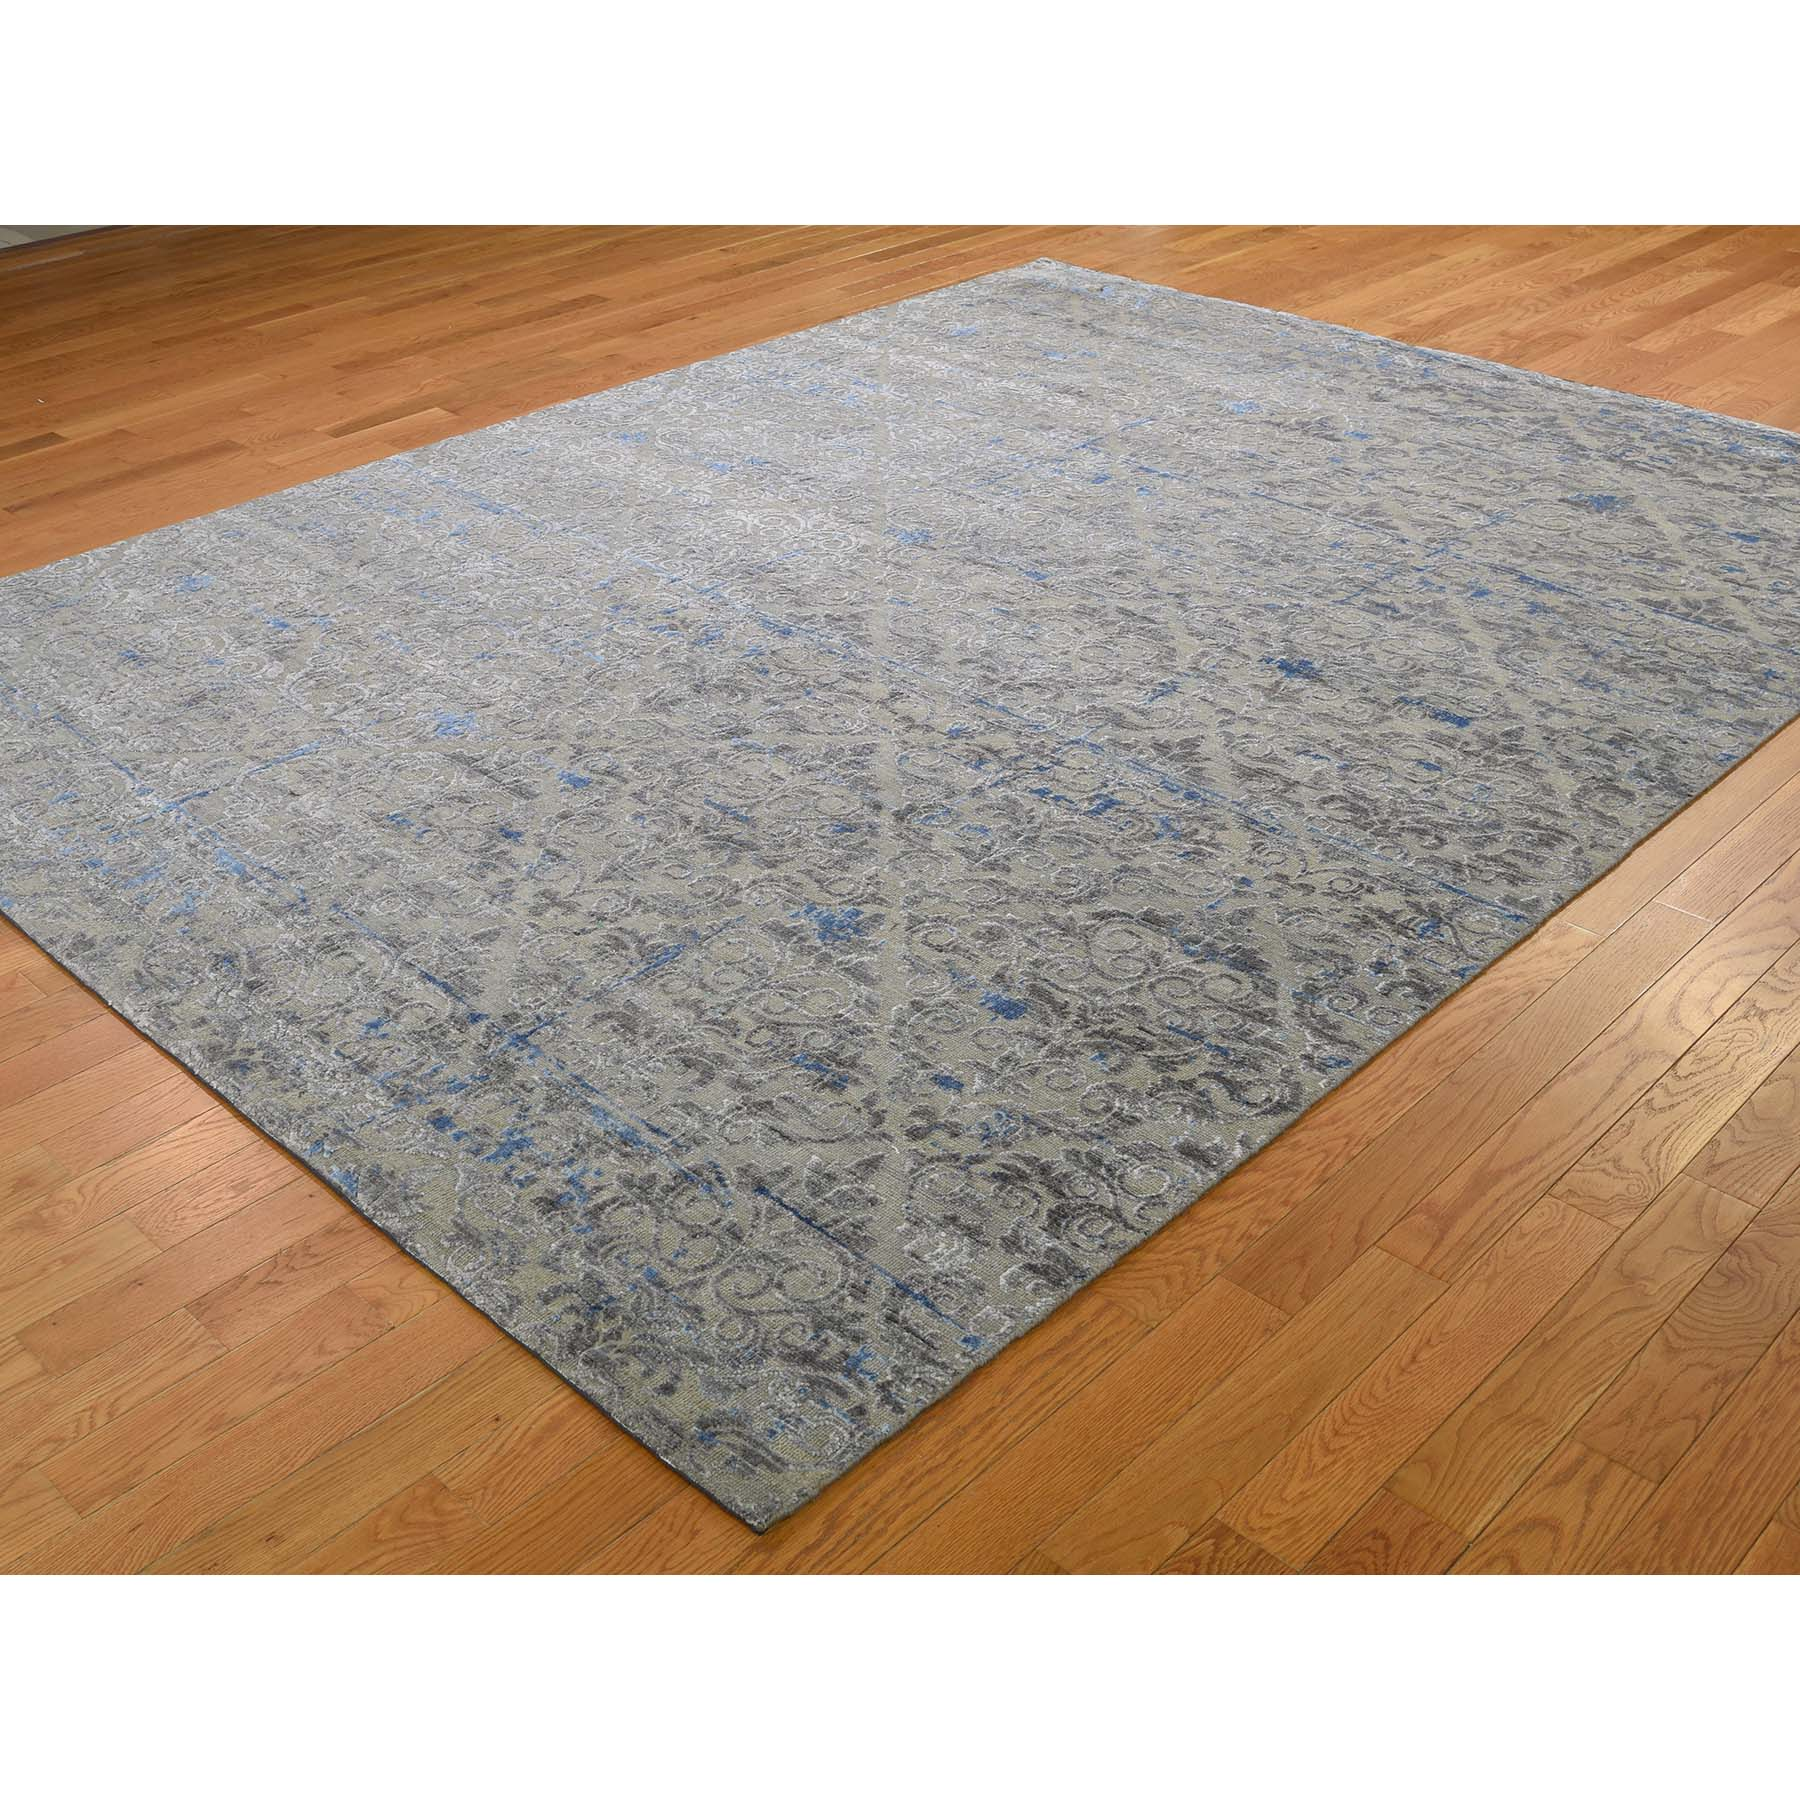 7-10 x10-2  Pure Silk With Oxidized Wool Trellis Garden Design Hand-Knotted Oriental Rug